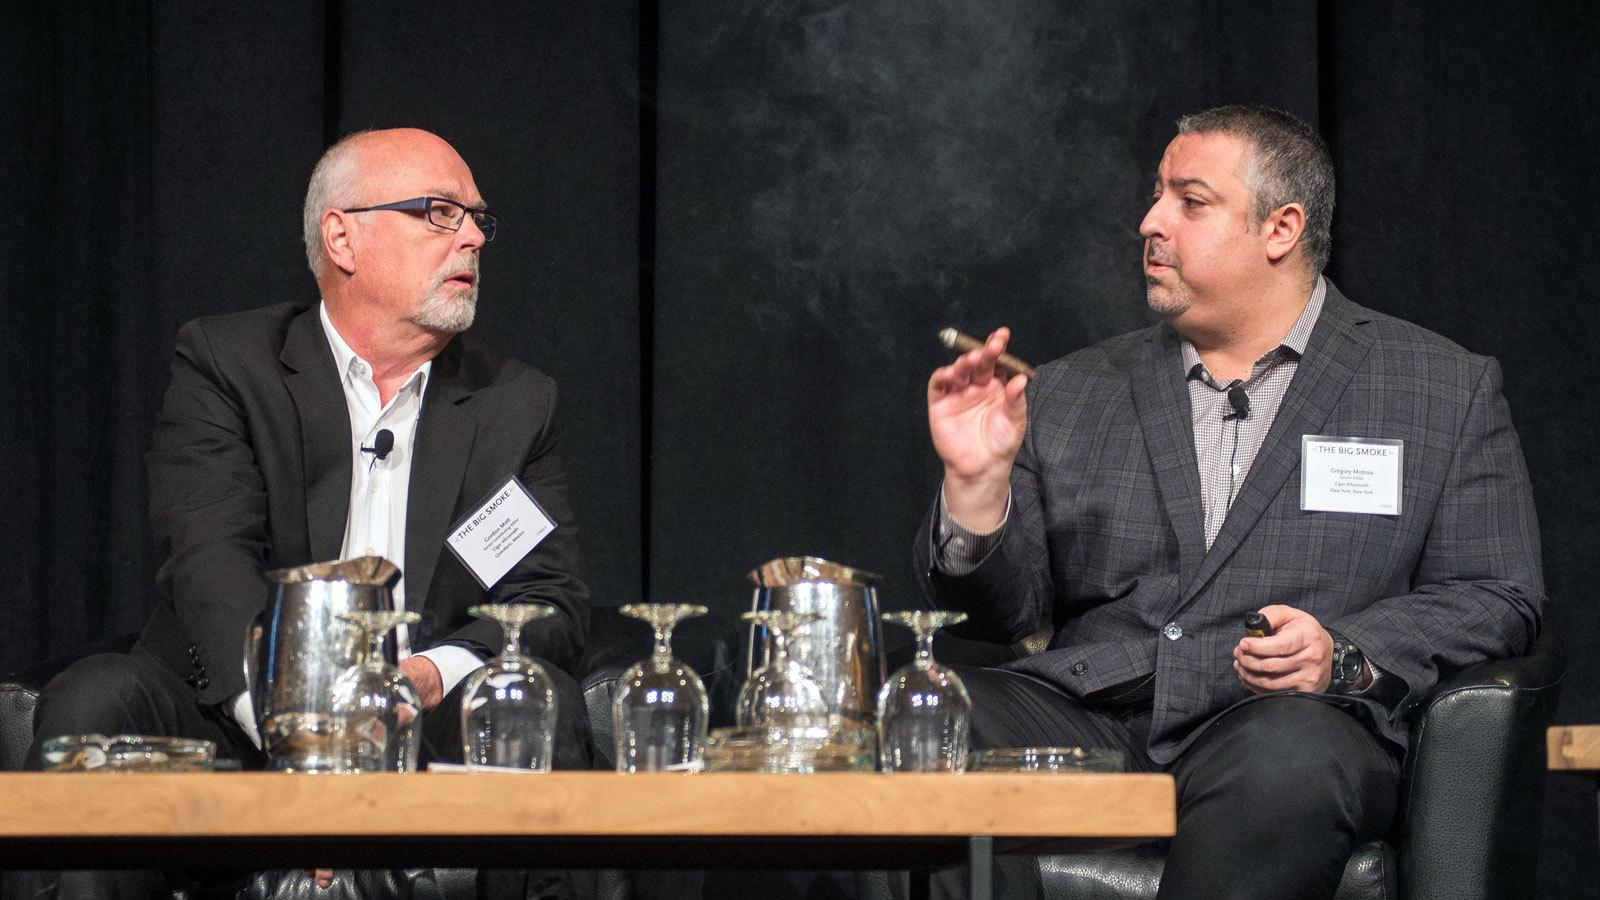 Senior contributing editor Gordon Mott and senior editor Greg Mottola take to the stage to host a seminar on spotting fake Cuban cigars.